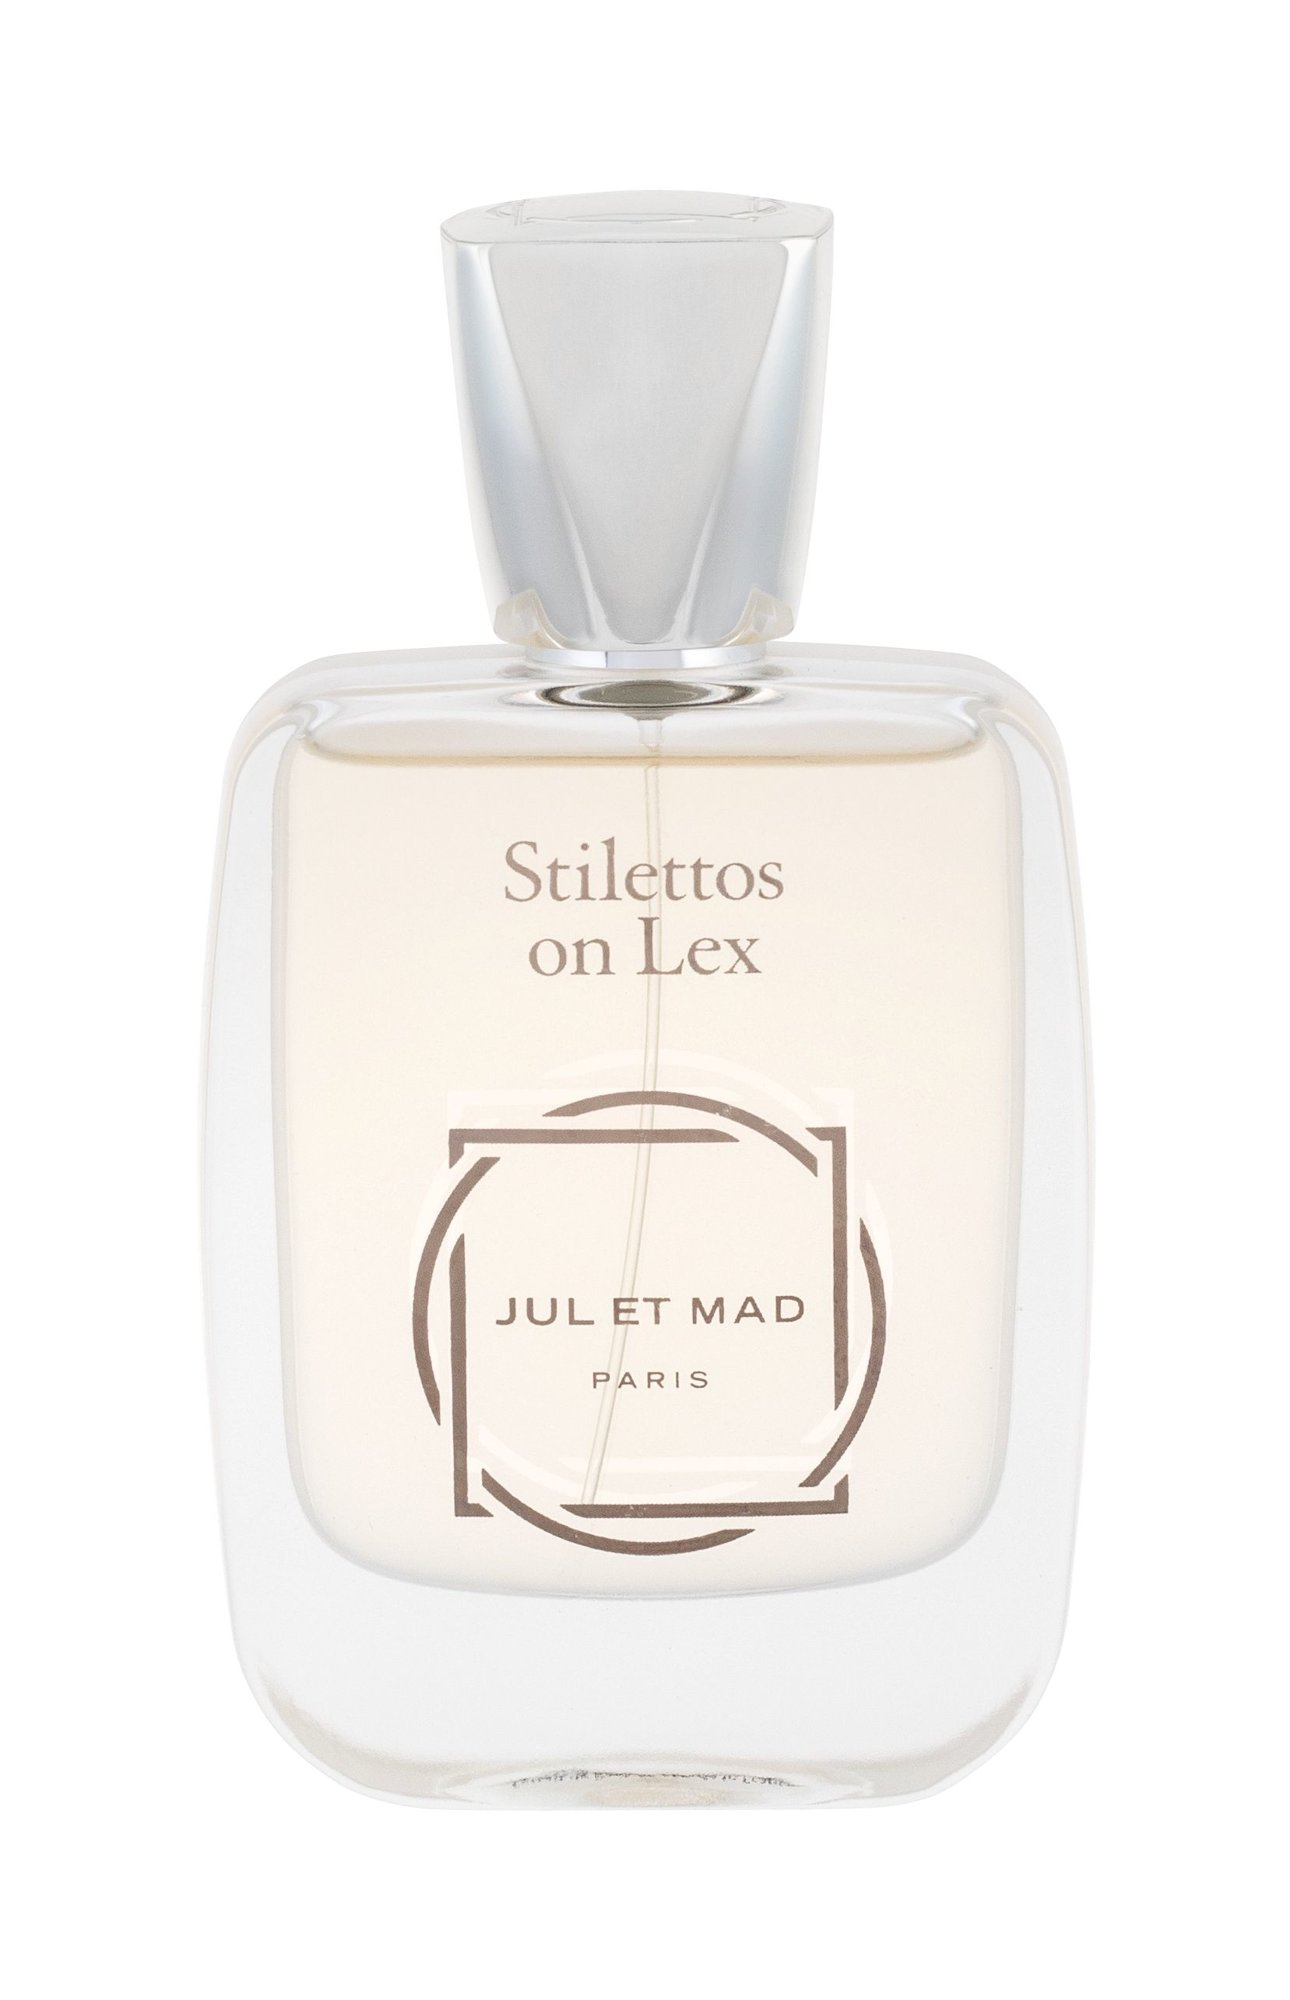 Jul et Mad Paris Stilettos on Lex Perfume 50ml